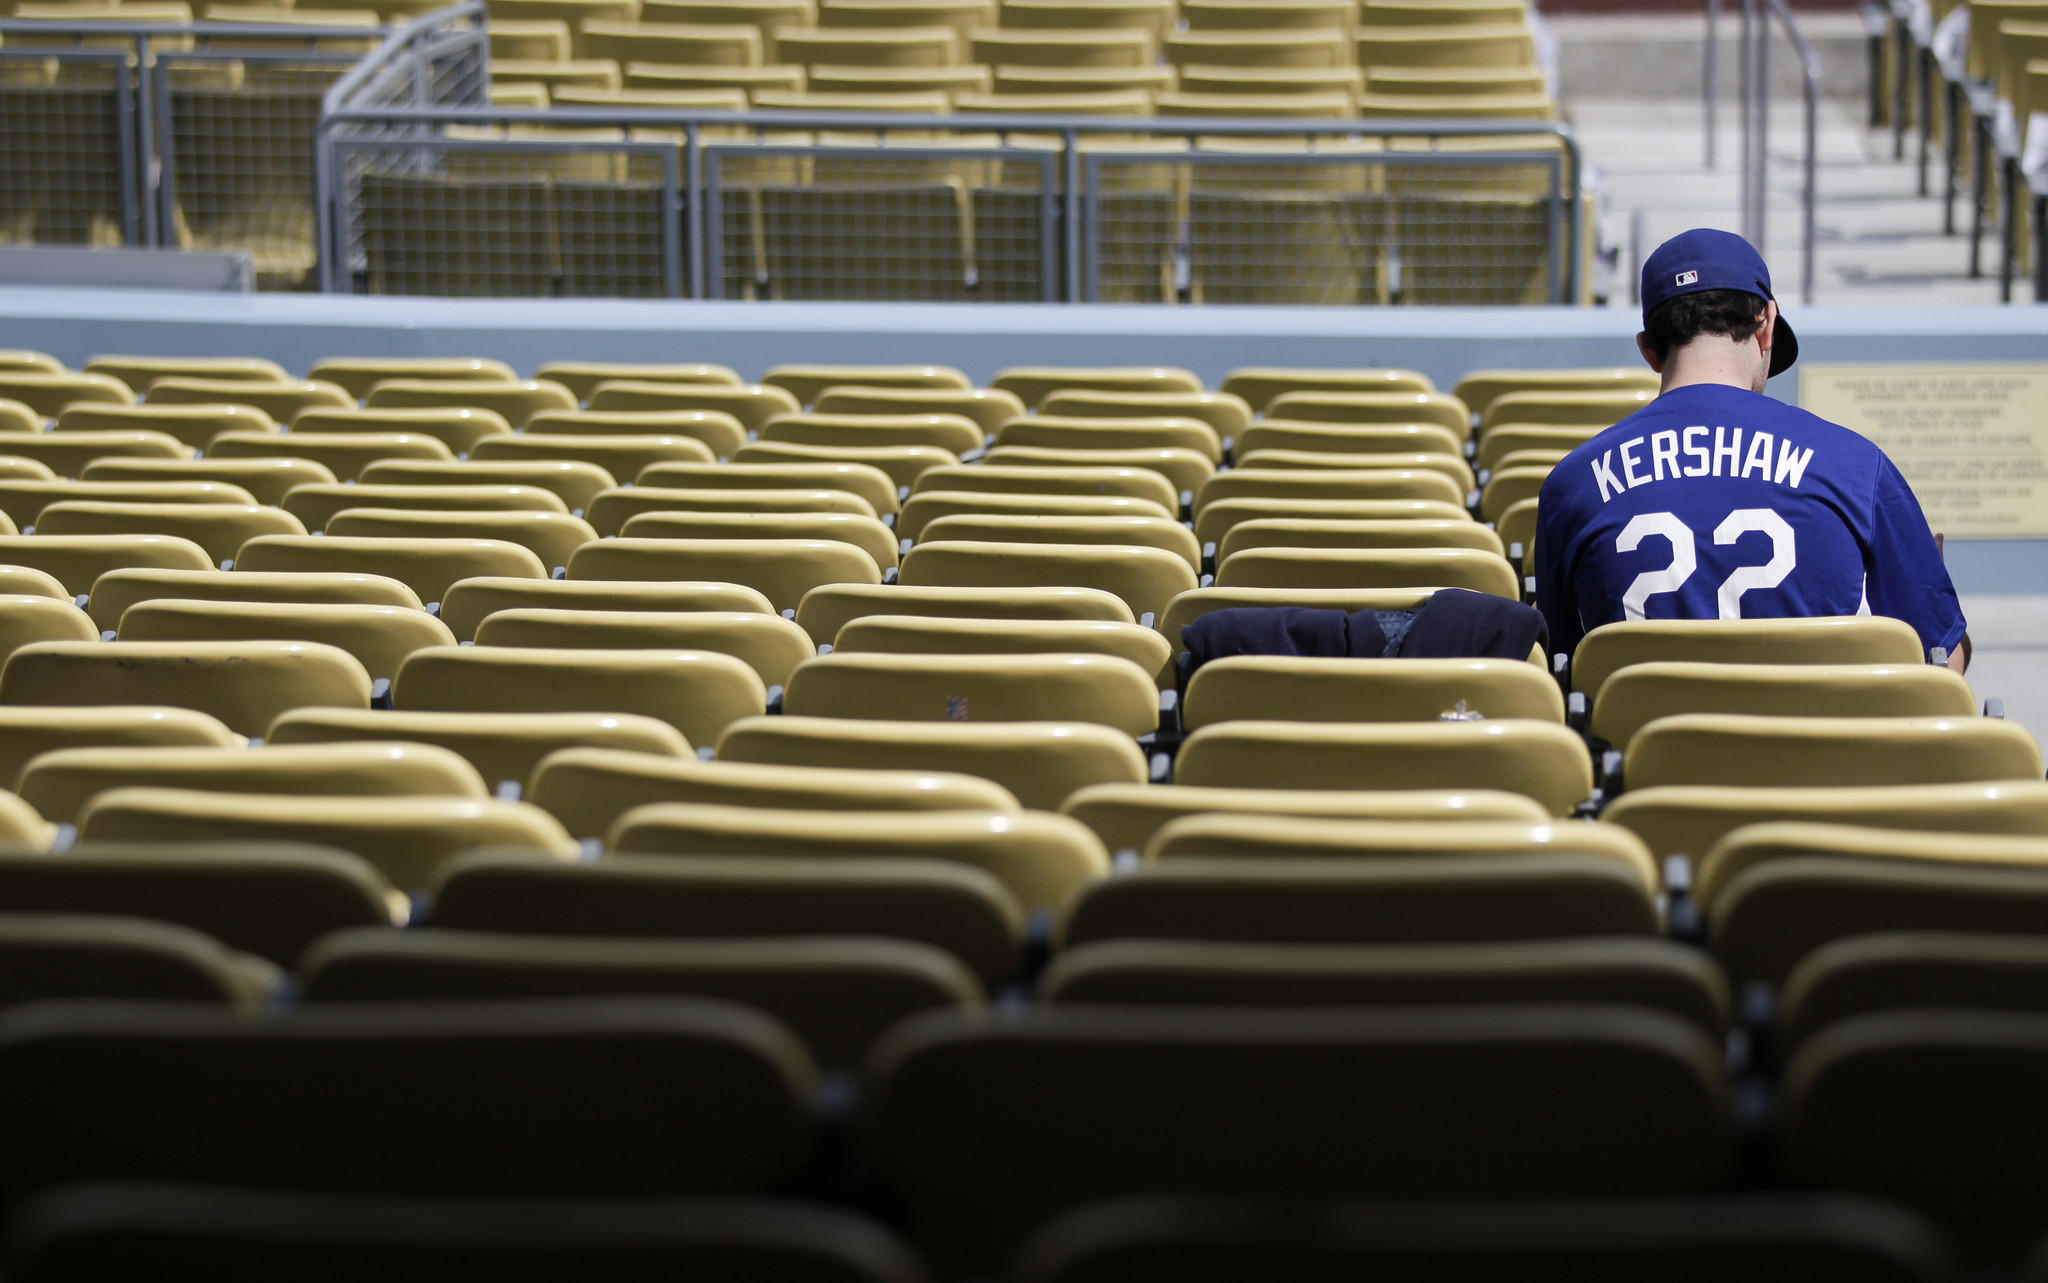 A fan wearing a t-shirt bearing the name of Dodgers ace Clayton Kershaw sits in the field-level seats at Dodger Stadium before the team's home opener against the San Francisco Giants. Some fans upset by the Dodgers' ongoing television debacle have threatened to boycott the team.